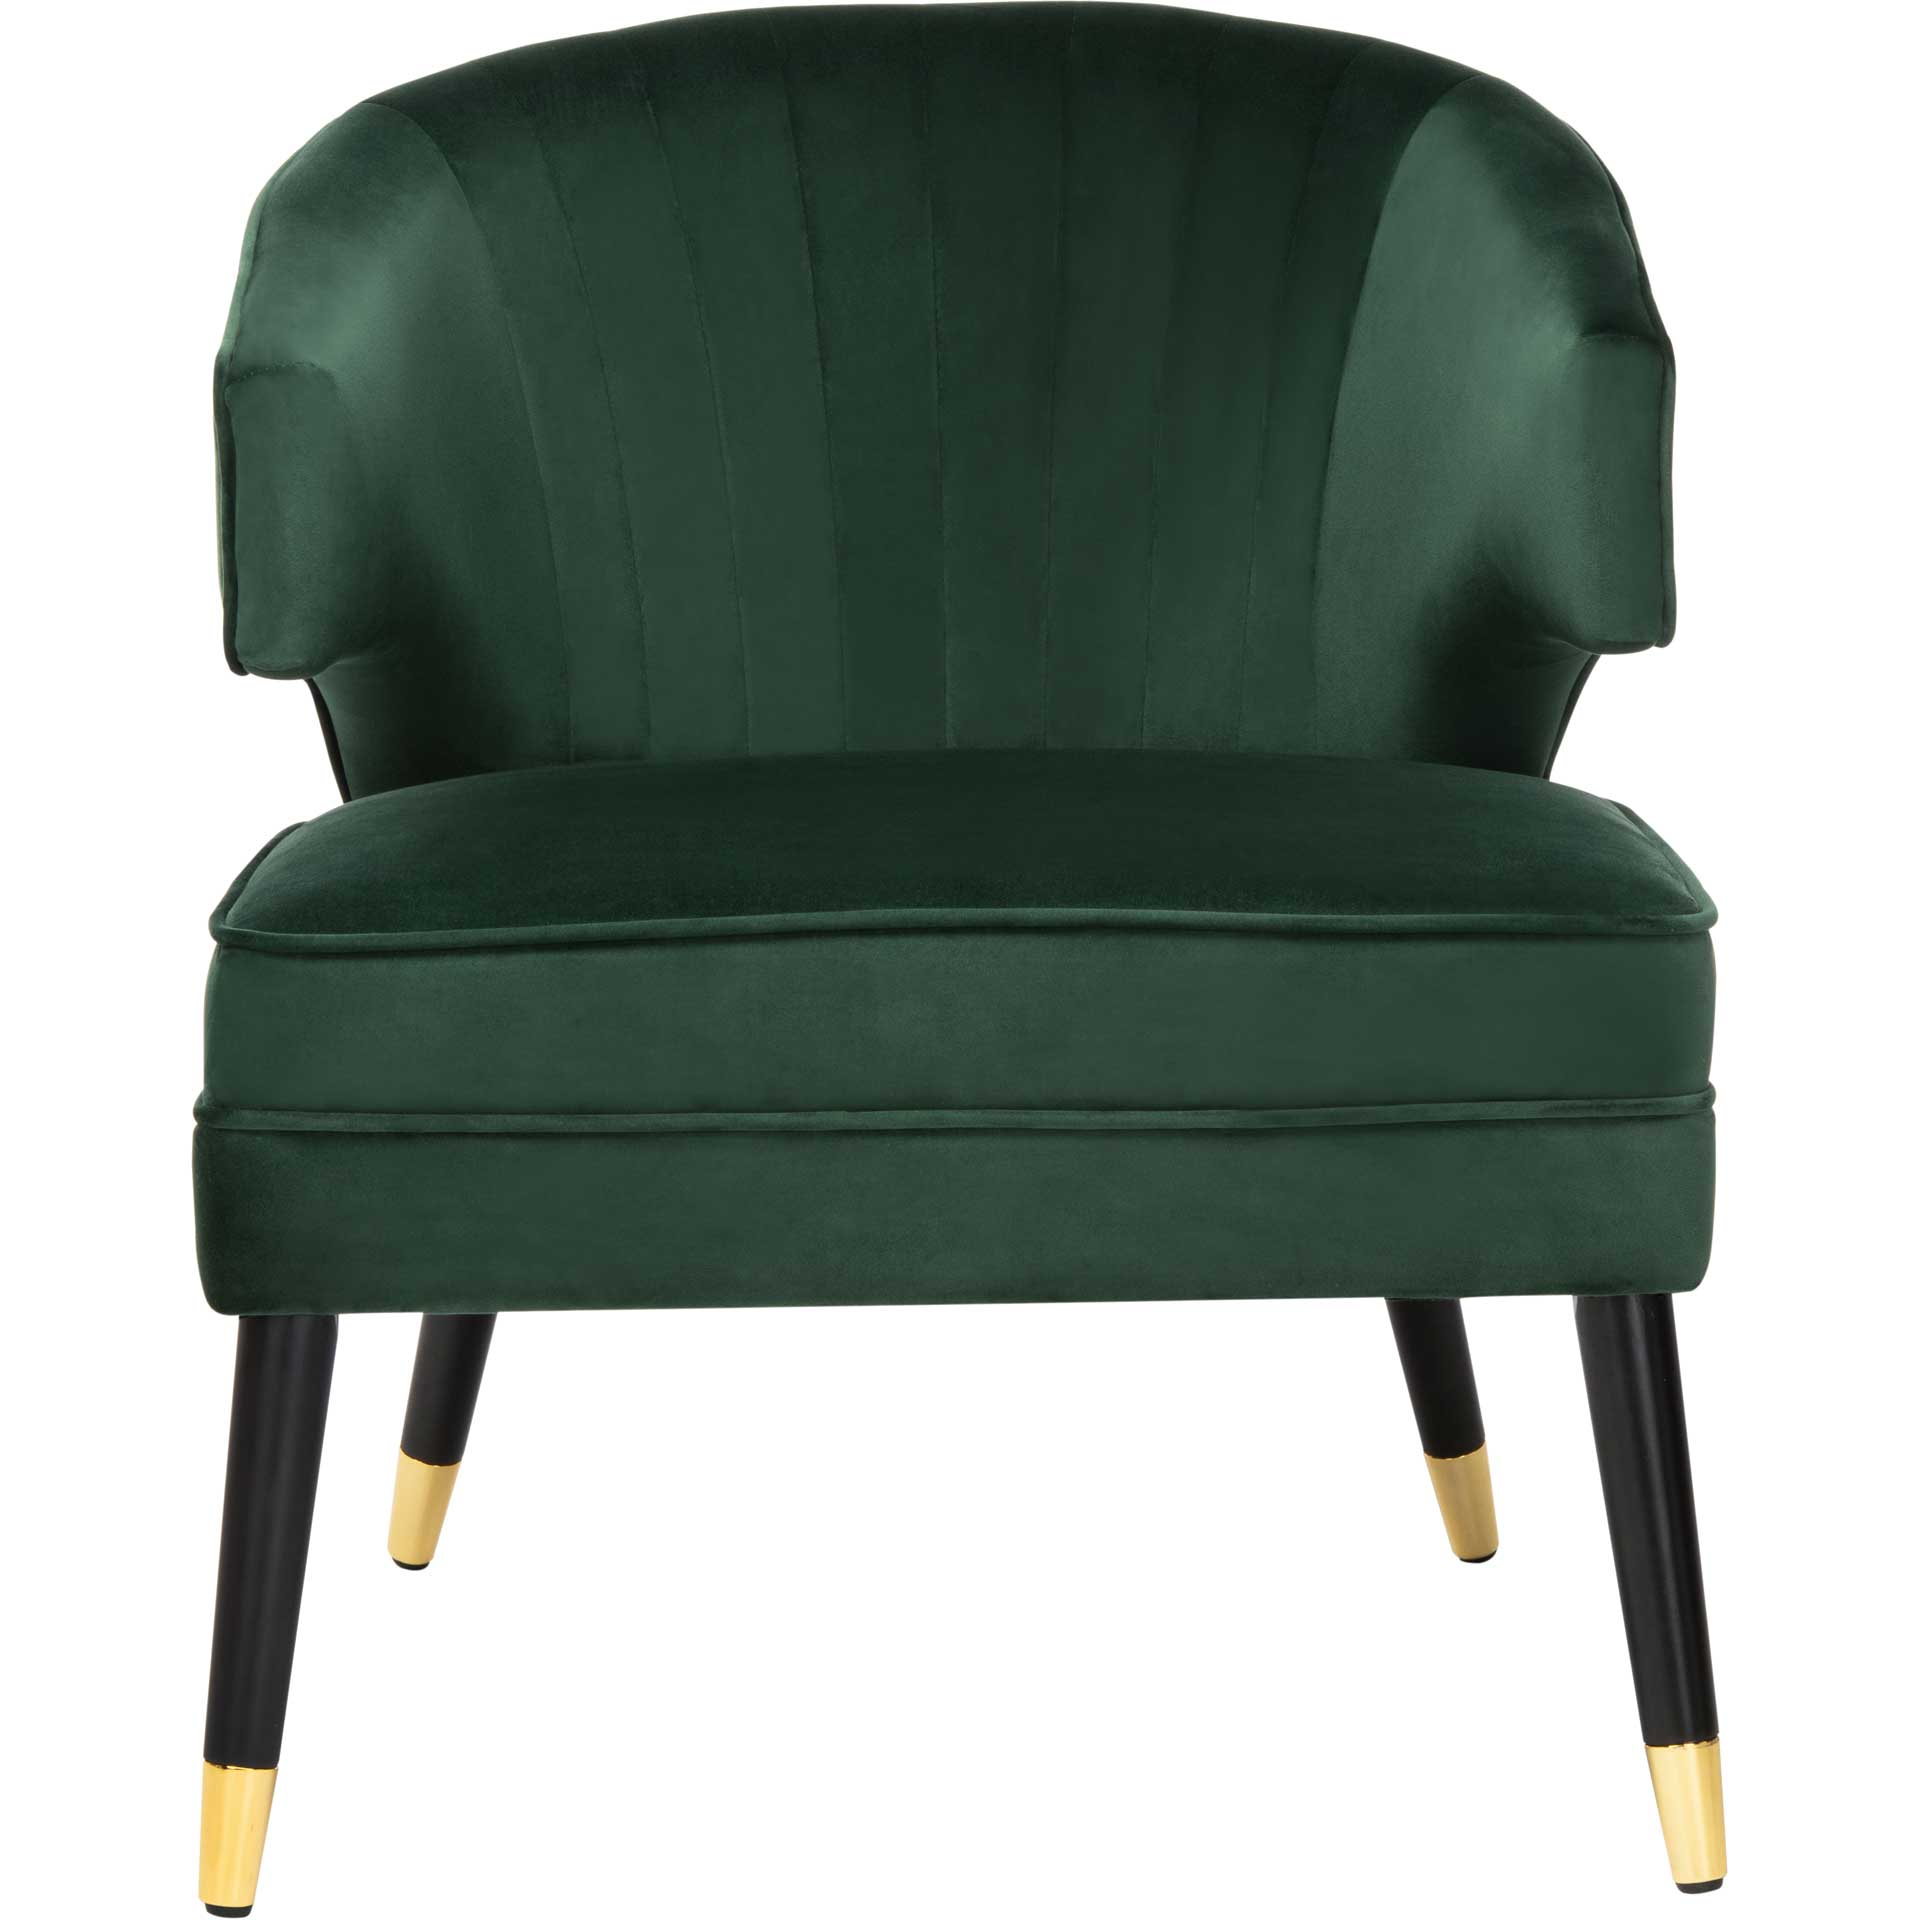 Stitch Wingback Accent Chair Forest Green/Black